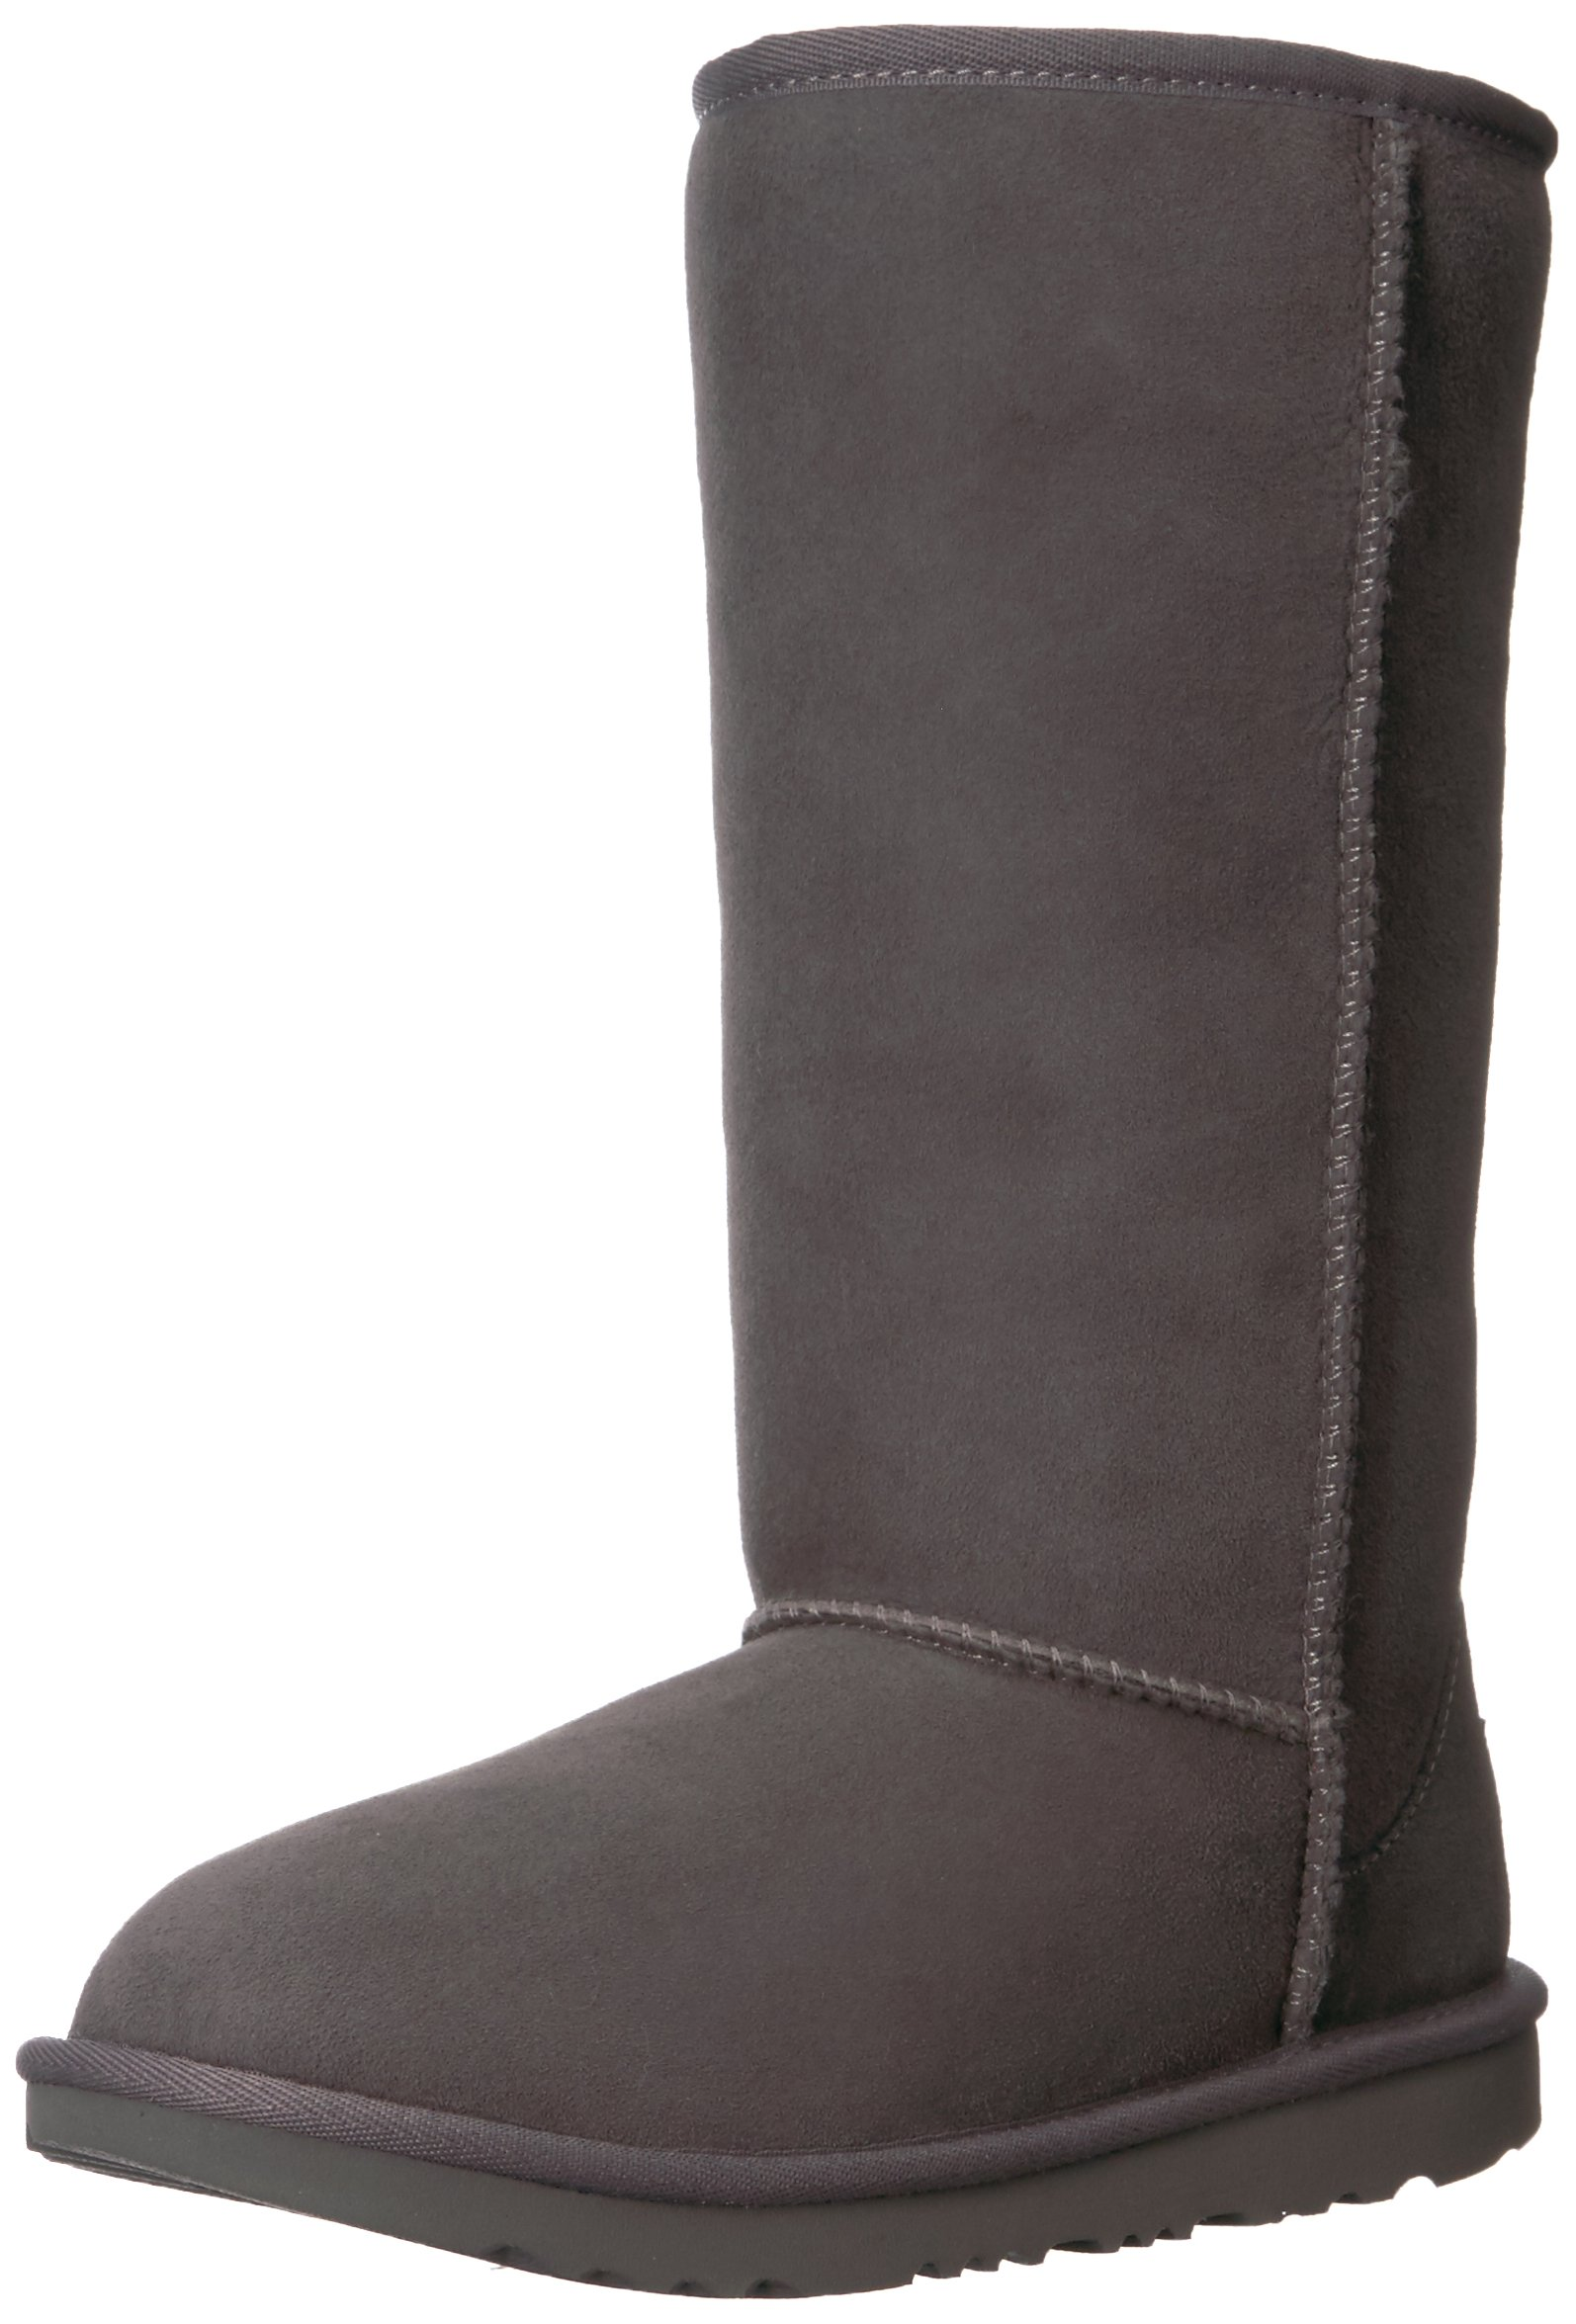 UGG Kids K Classic Tall II Pull-on Boot, Grey, 4 M US Big Kid